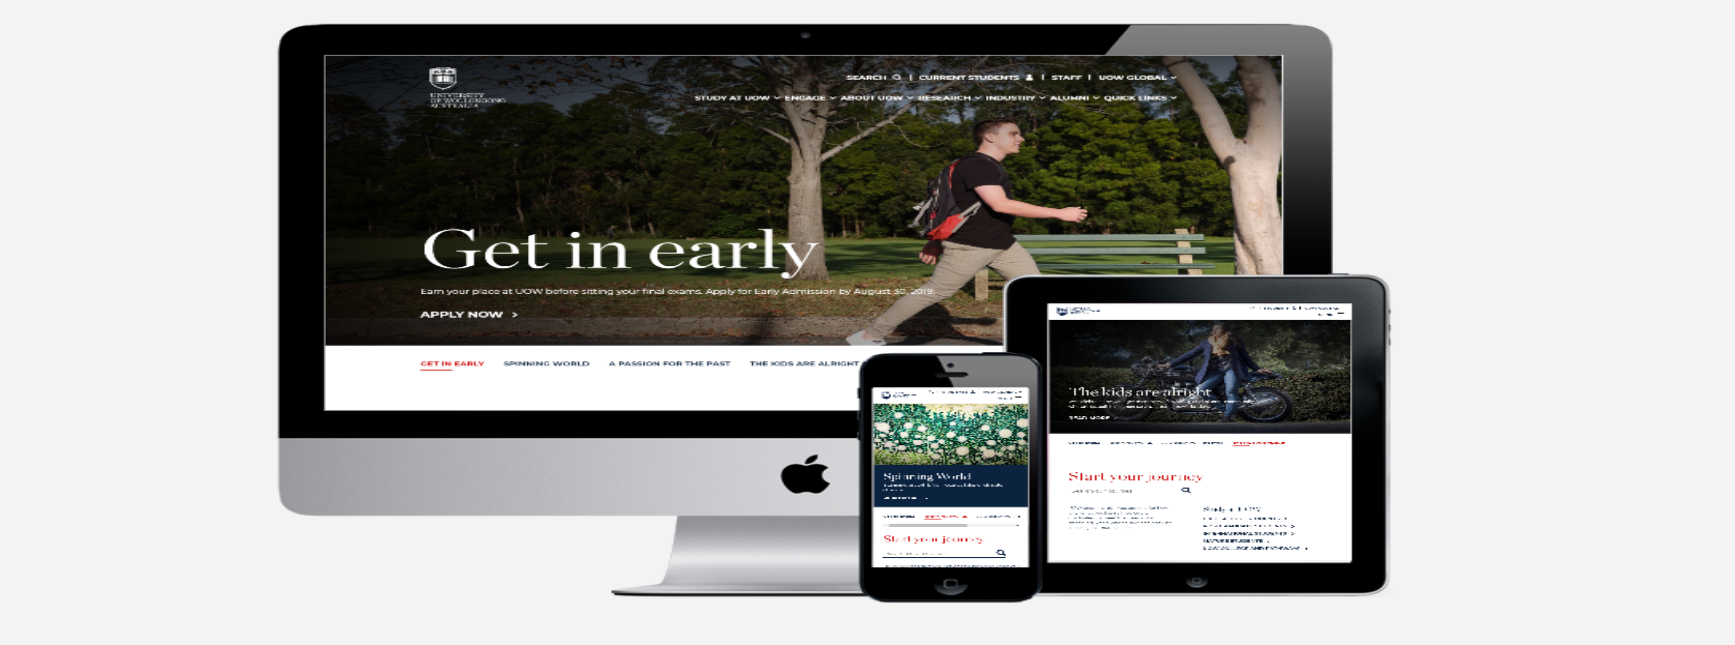 Image of the University of Wollongong's website on multiple devices